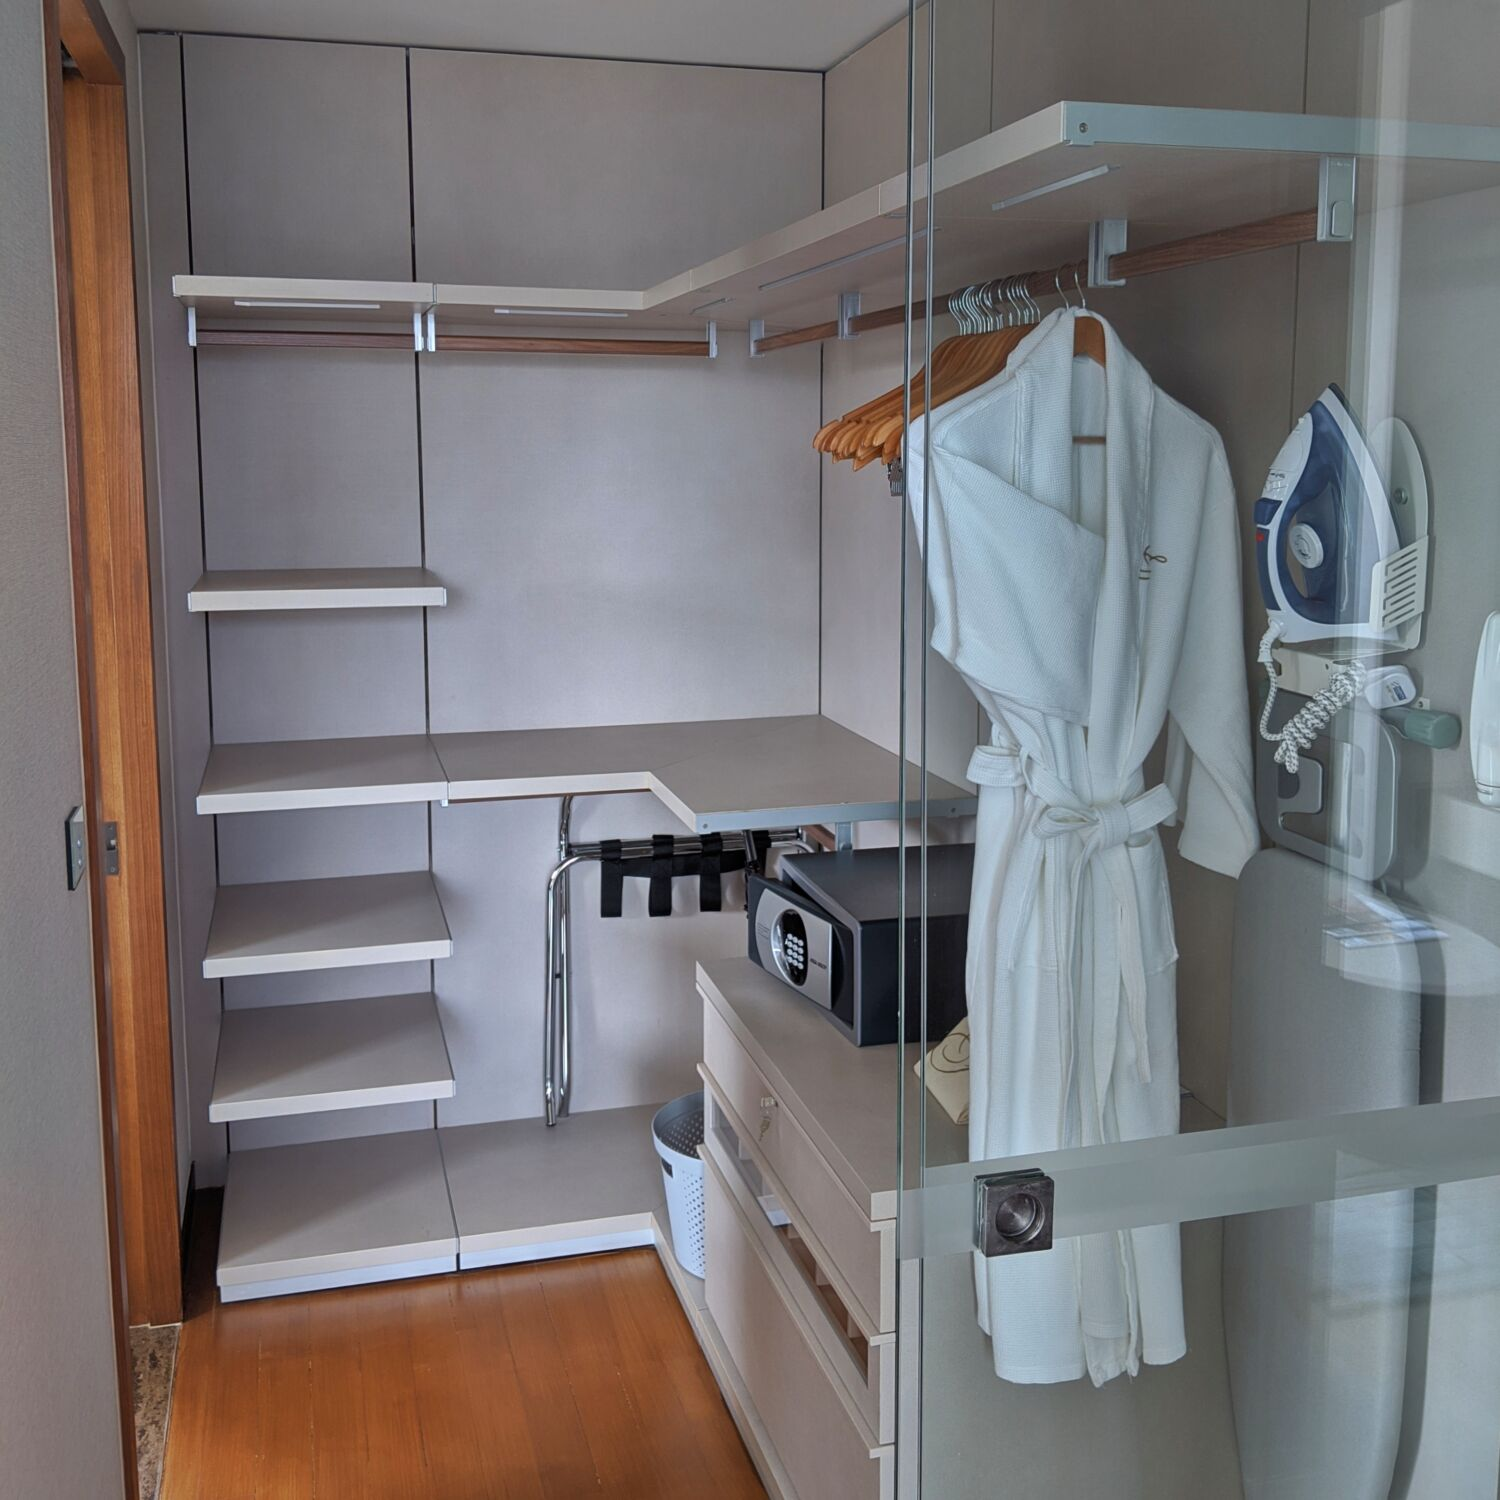 Fraser Residence Orchard Singapore One-Bedroom Executive Terrace Bedroom Closet